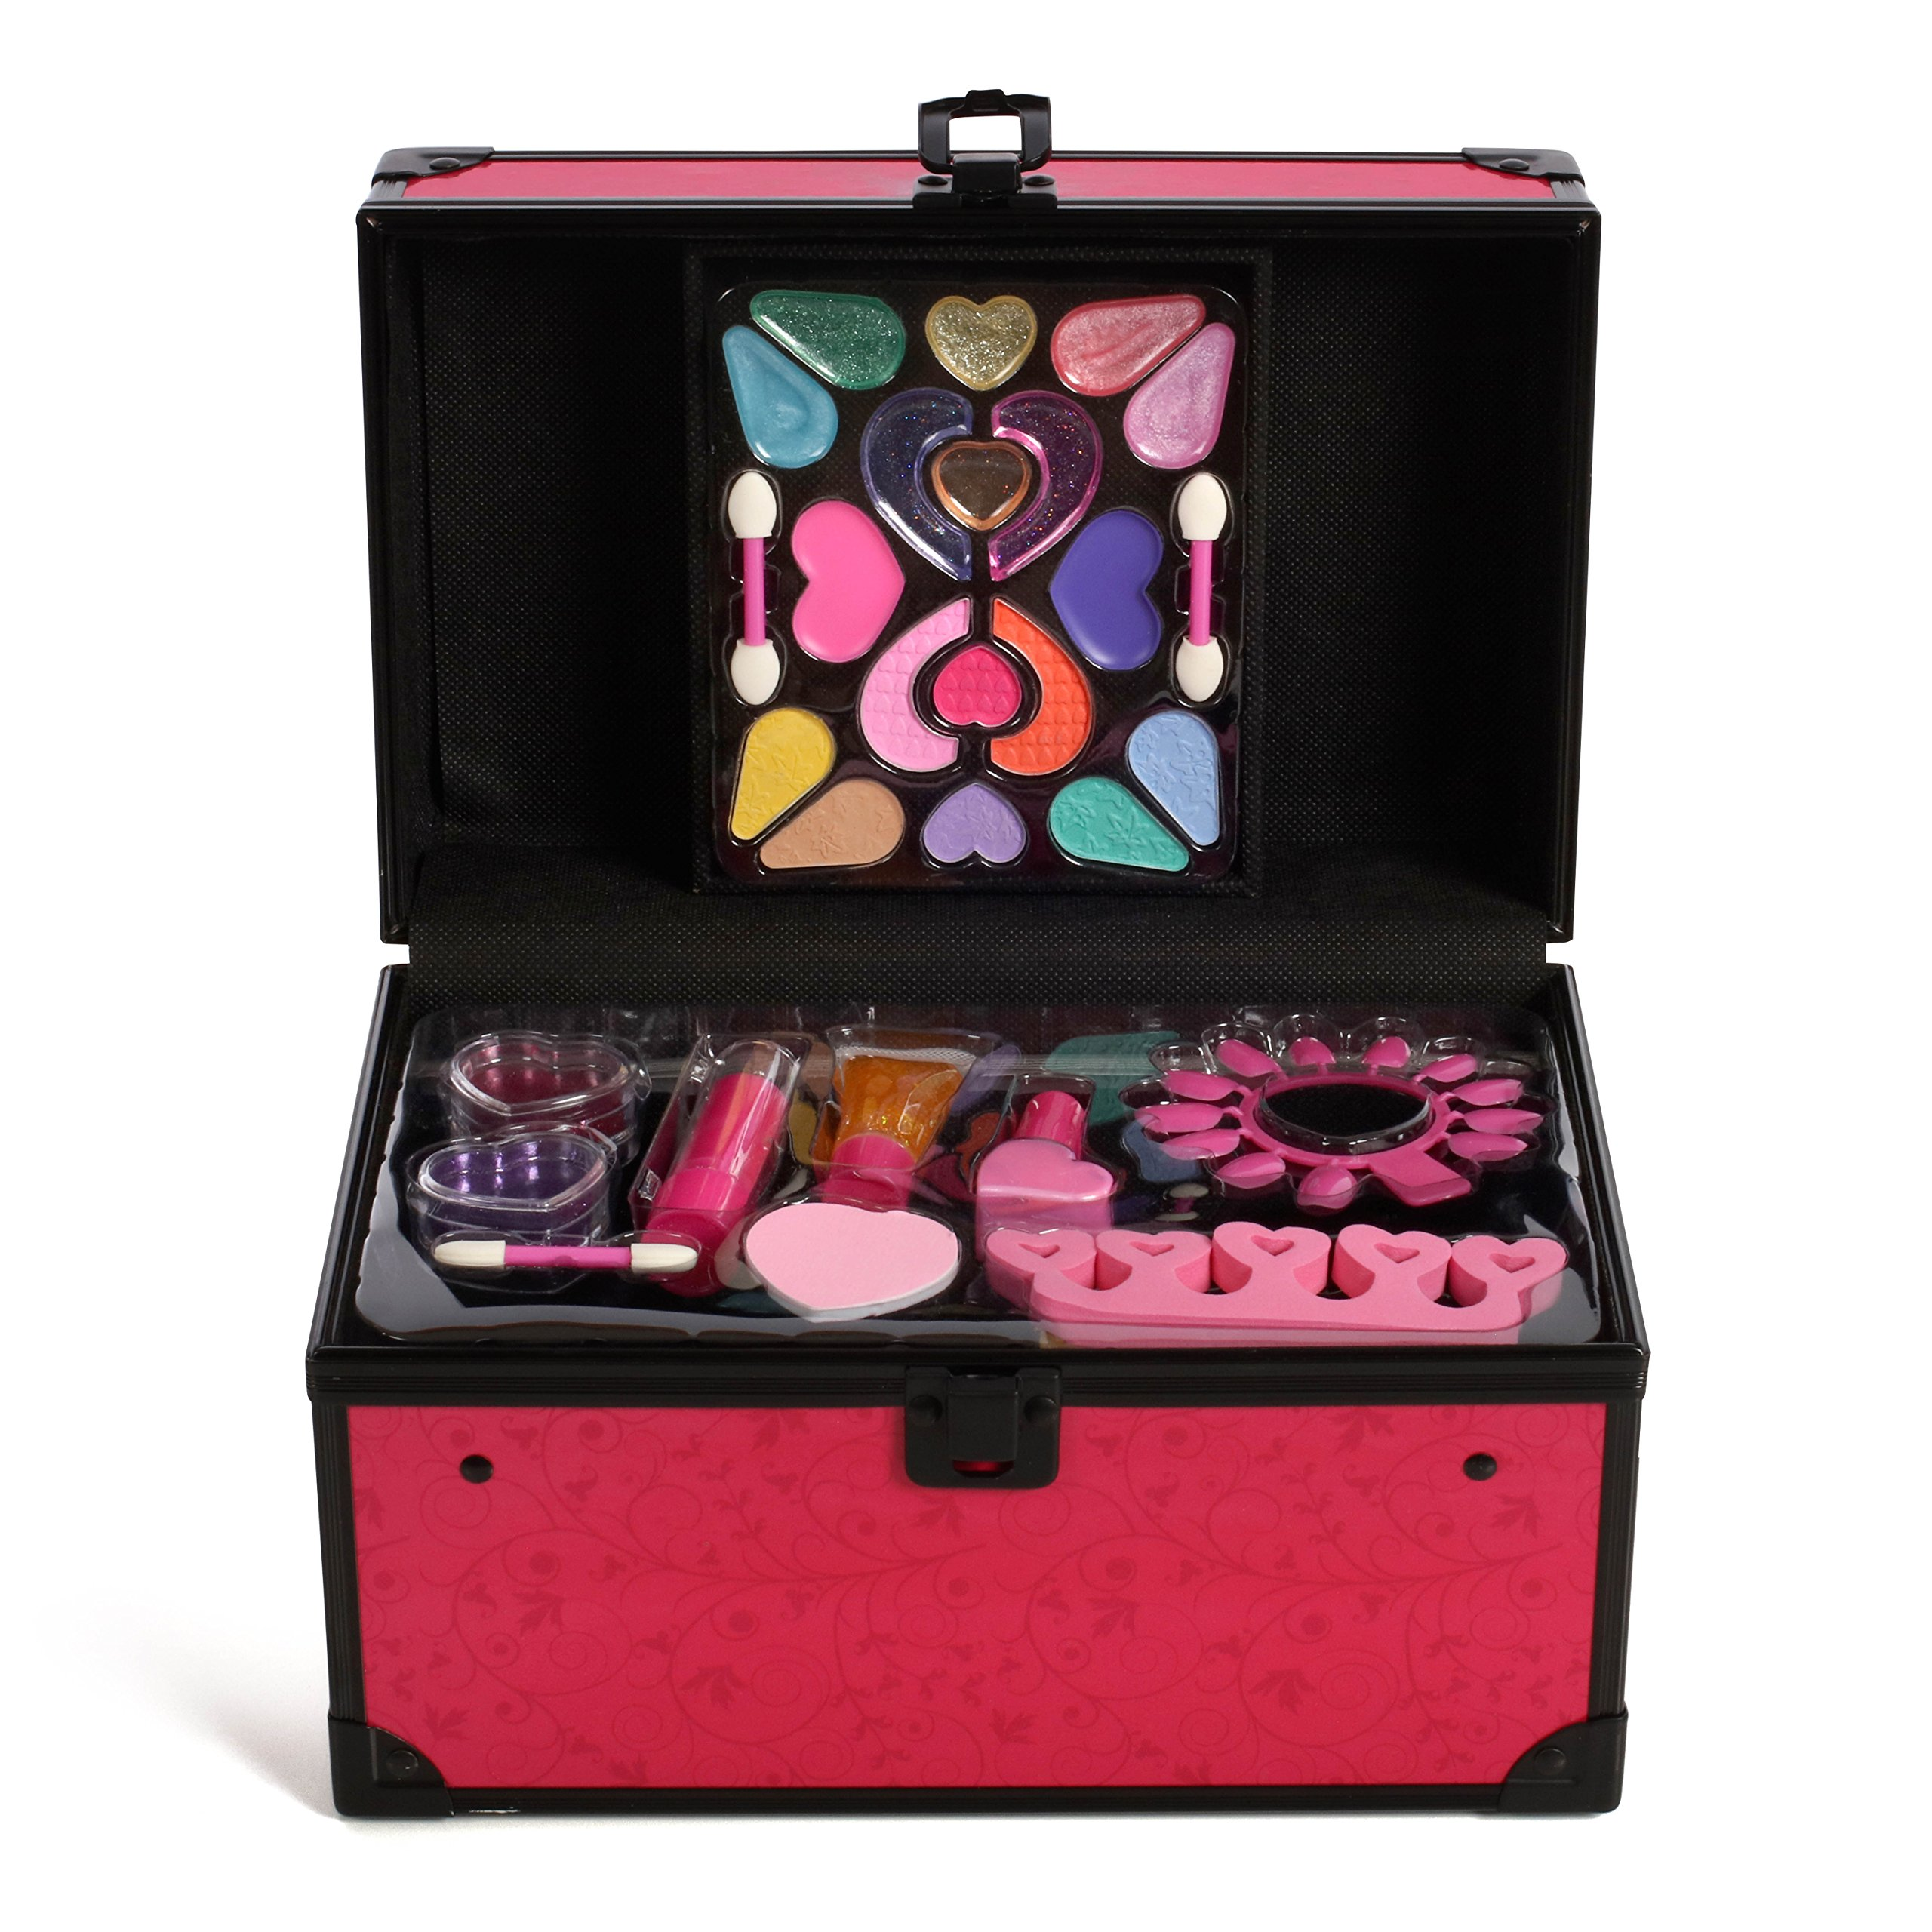 IQ Toys Deluxe All in One Travel Girls Makeup Set by IQ Toys (Image #4)